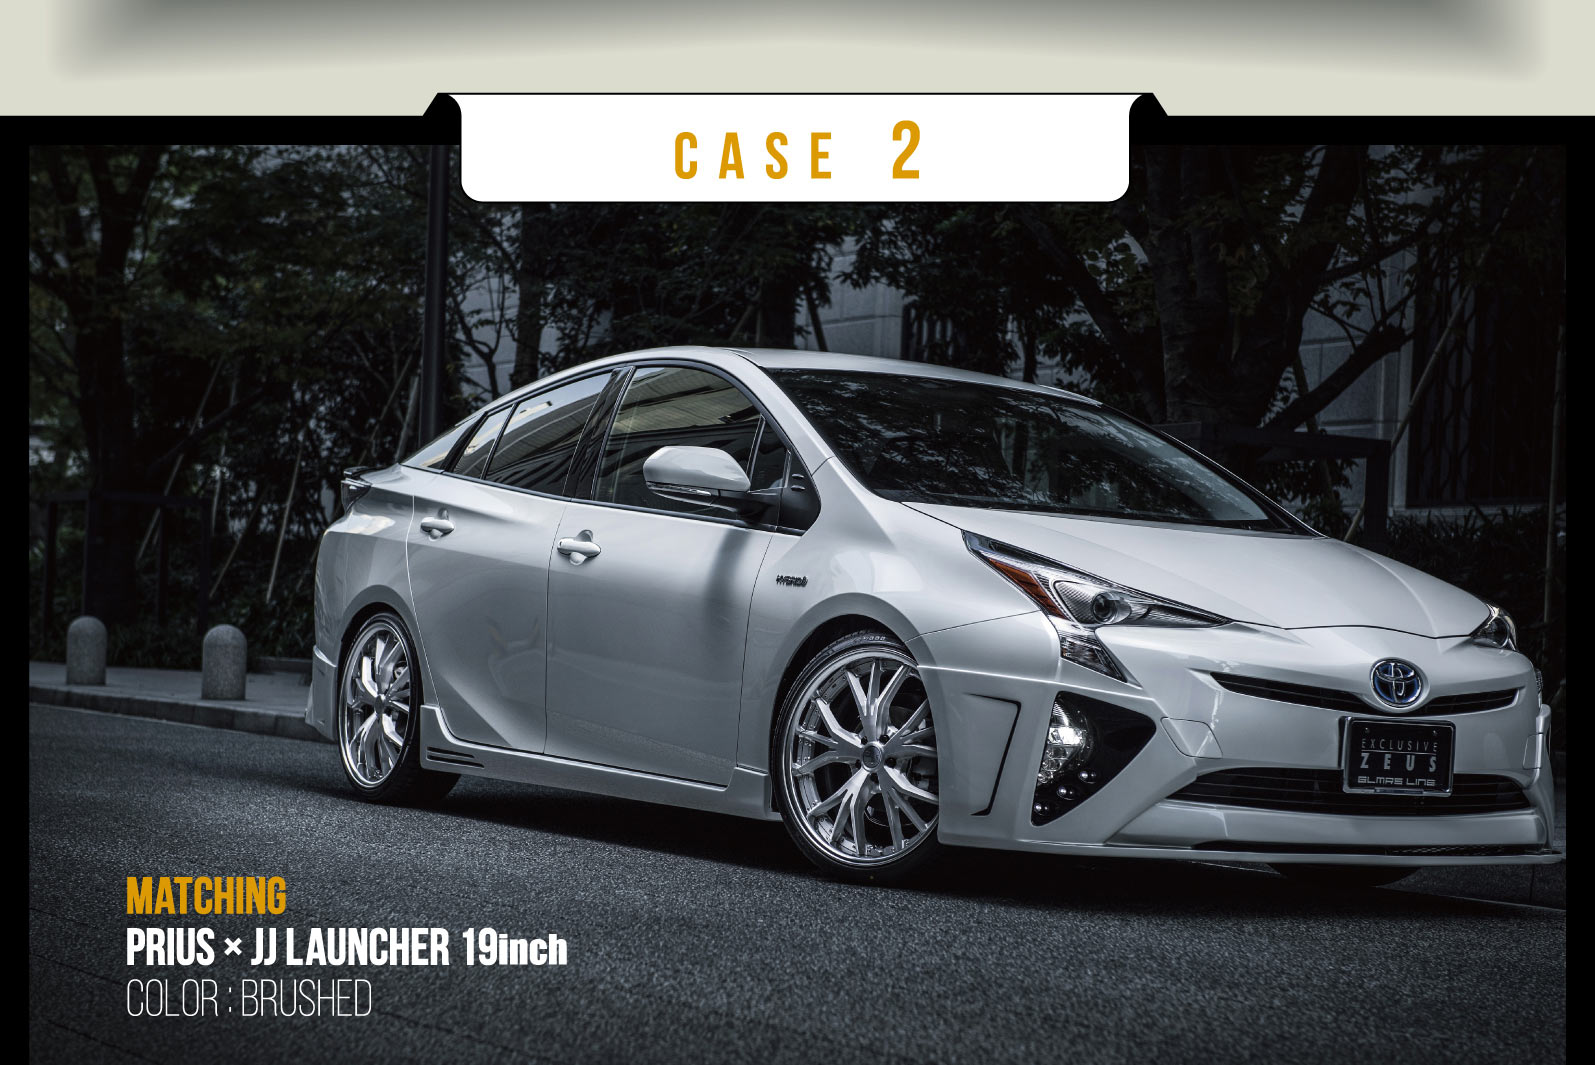 CASE 2 MATCHING PRIUS × JJ Launcher 19inch COLOR : BRUSHED